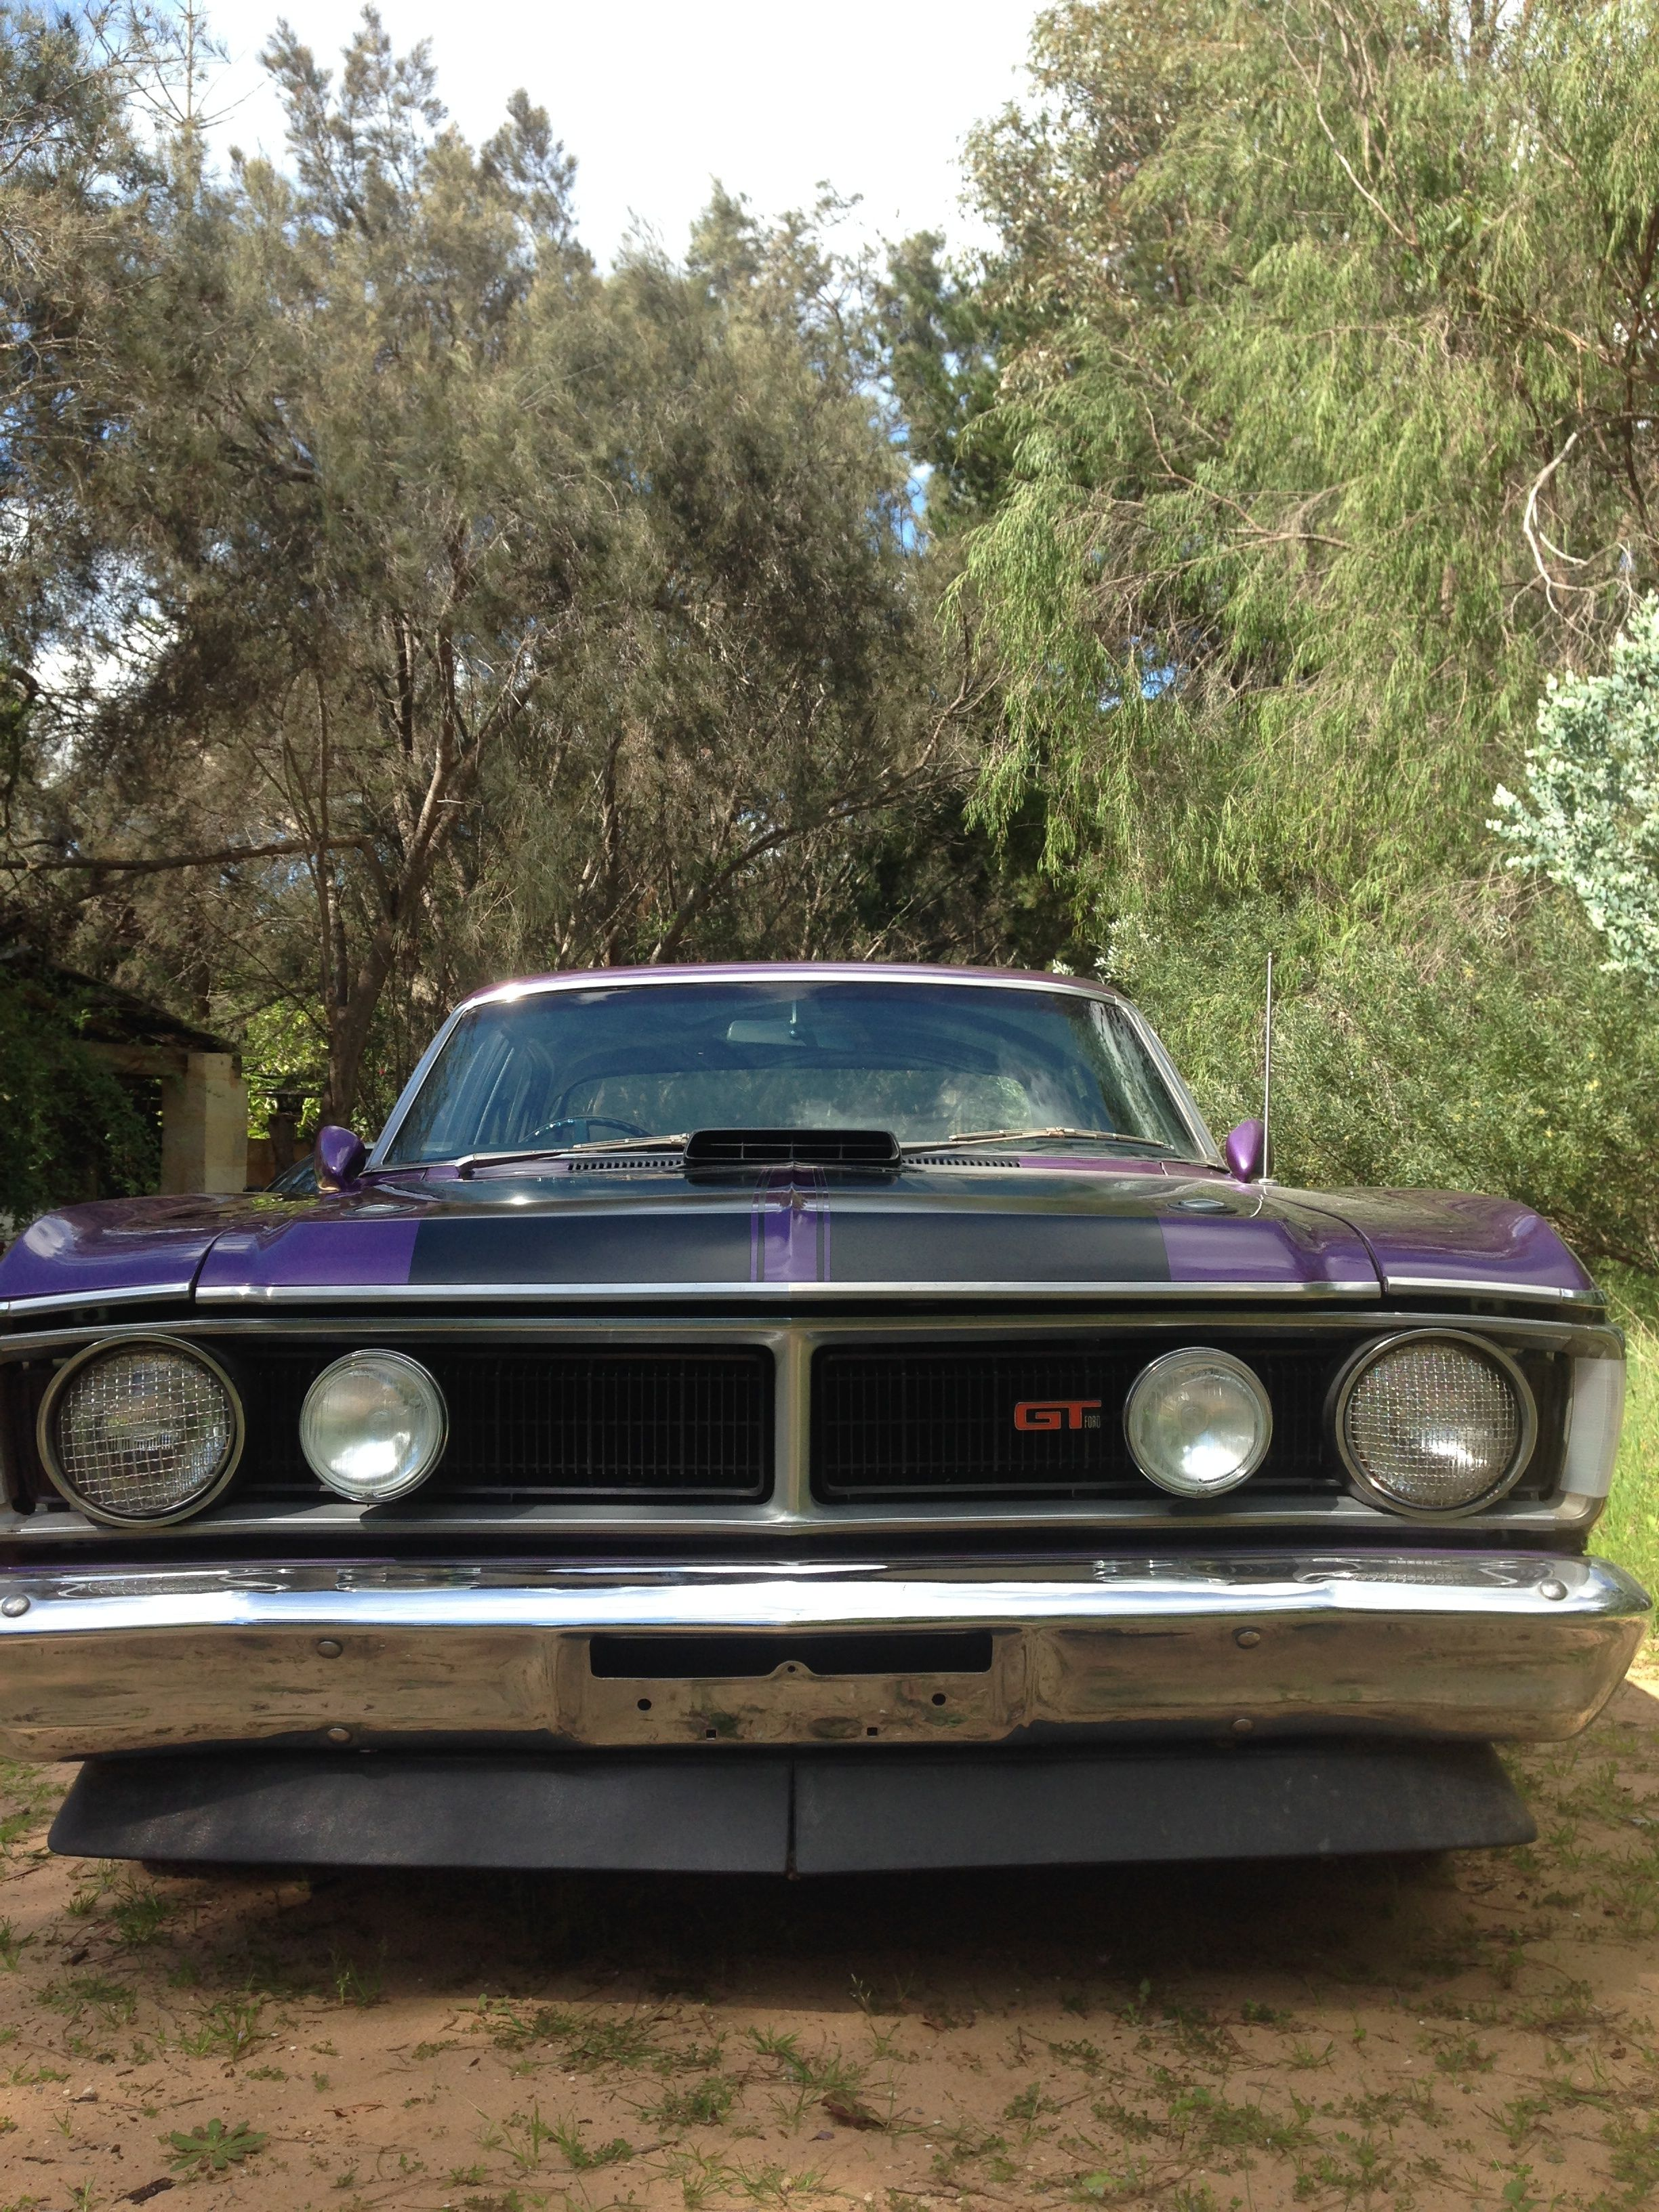 1971 Xy Ford Falcon Gt Ho Phase 3 Shaker 351 Cleveland Motor